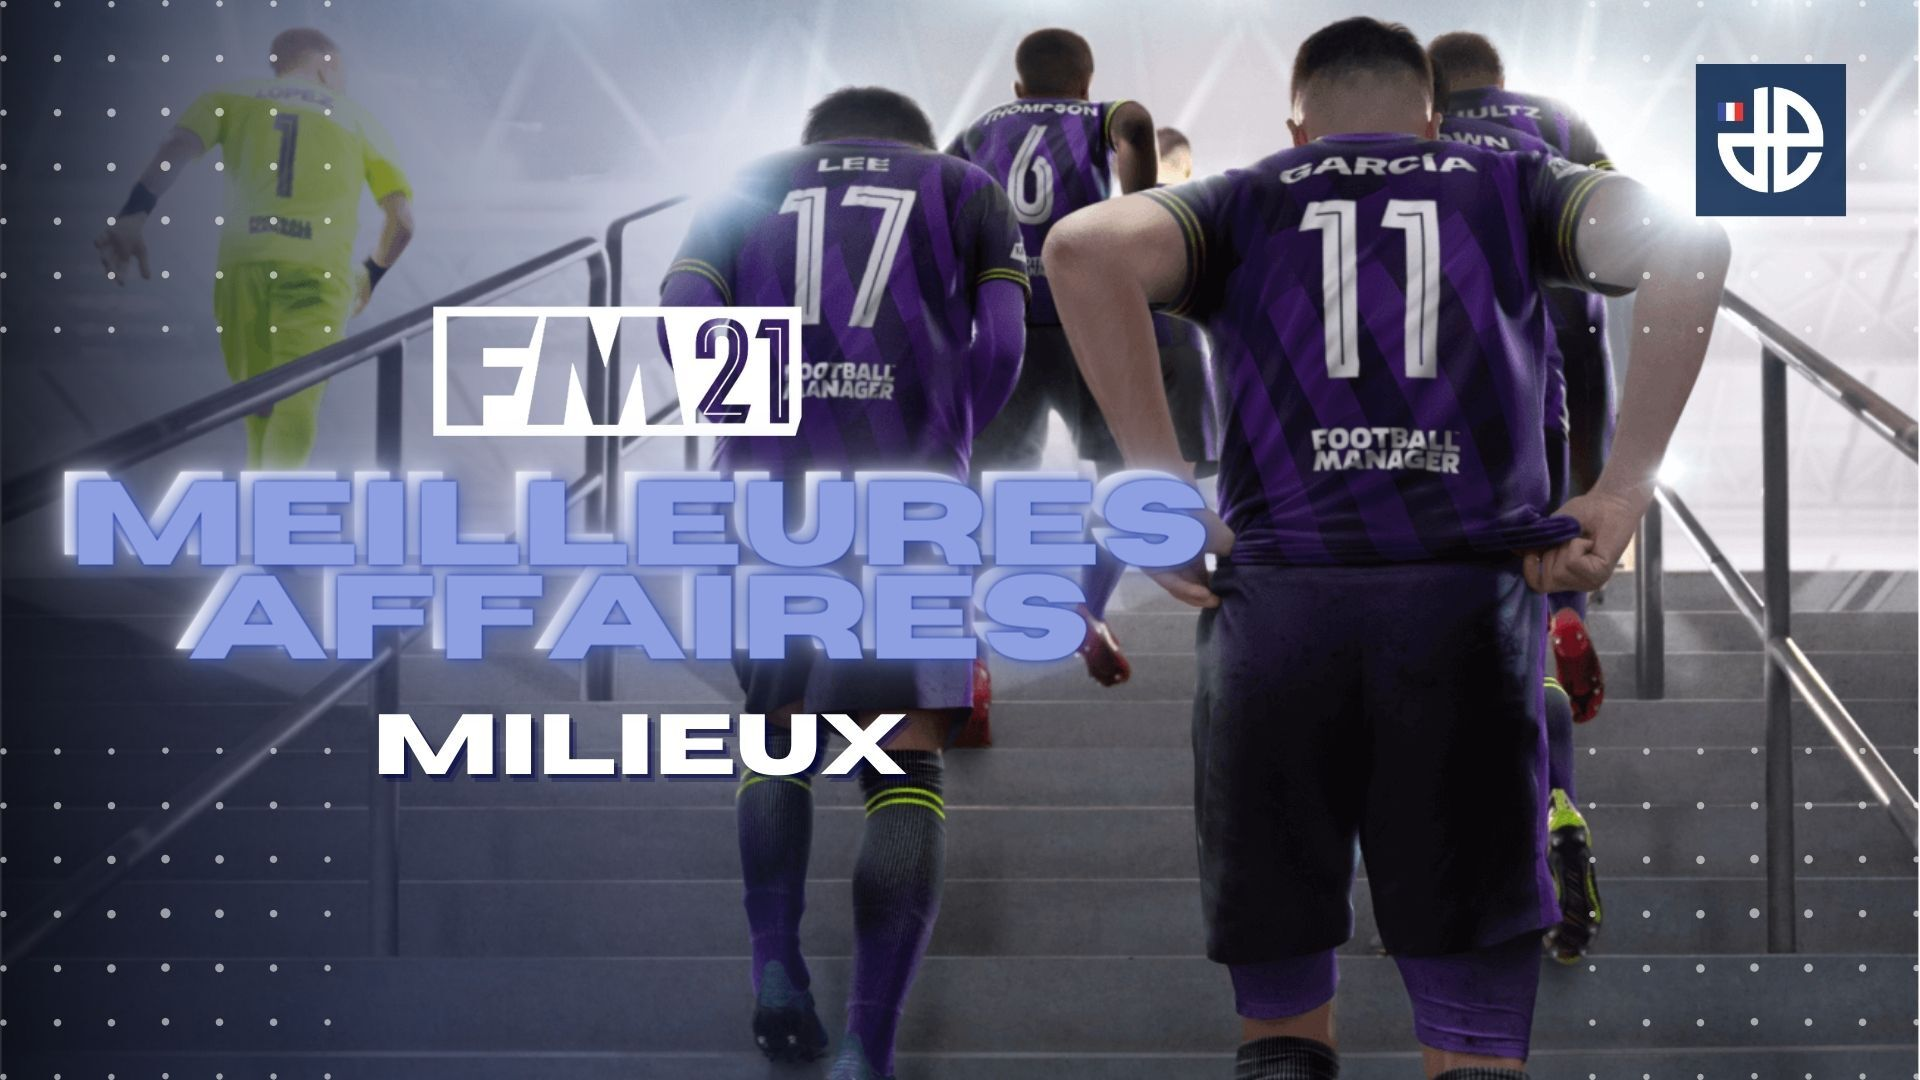 Football Manager 21 milieux bargains